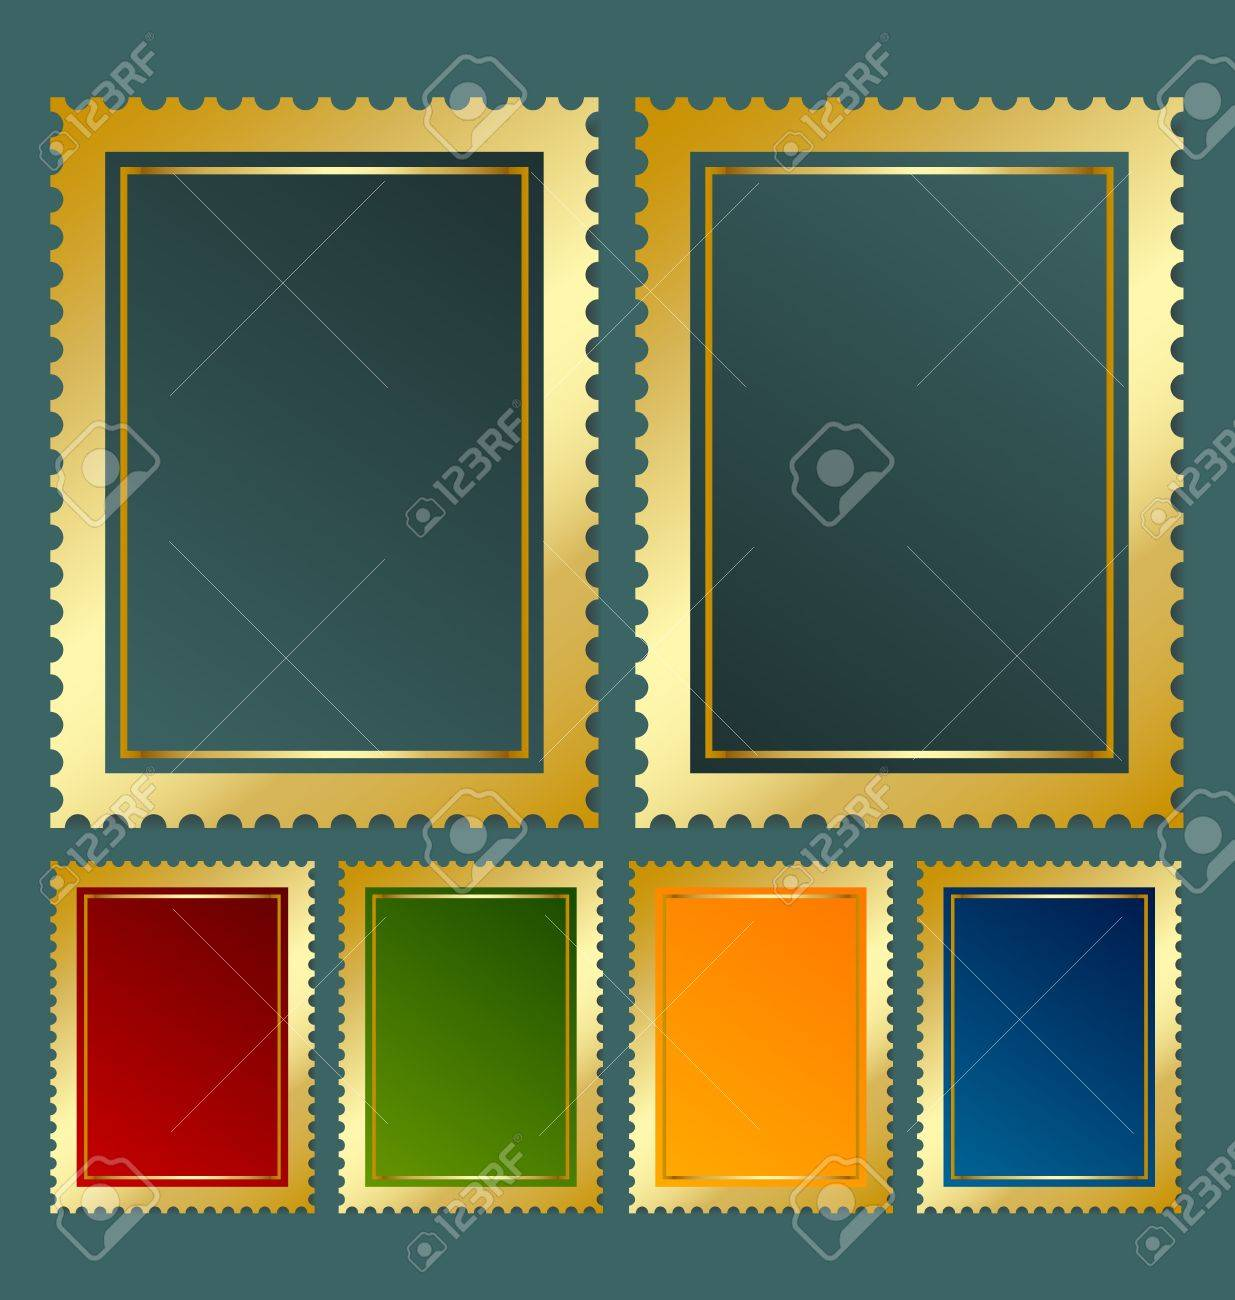 Postage stamp template in various color variations Stock Vector - 12925392